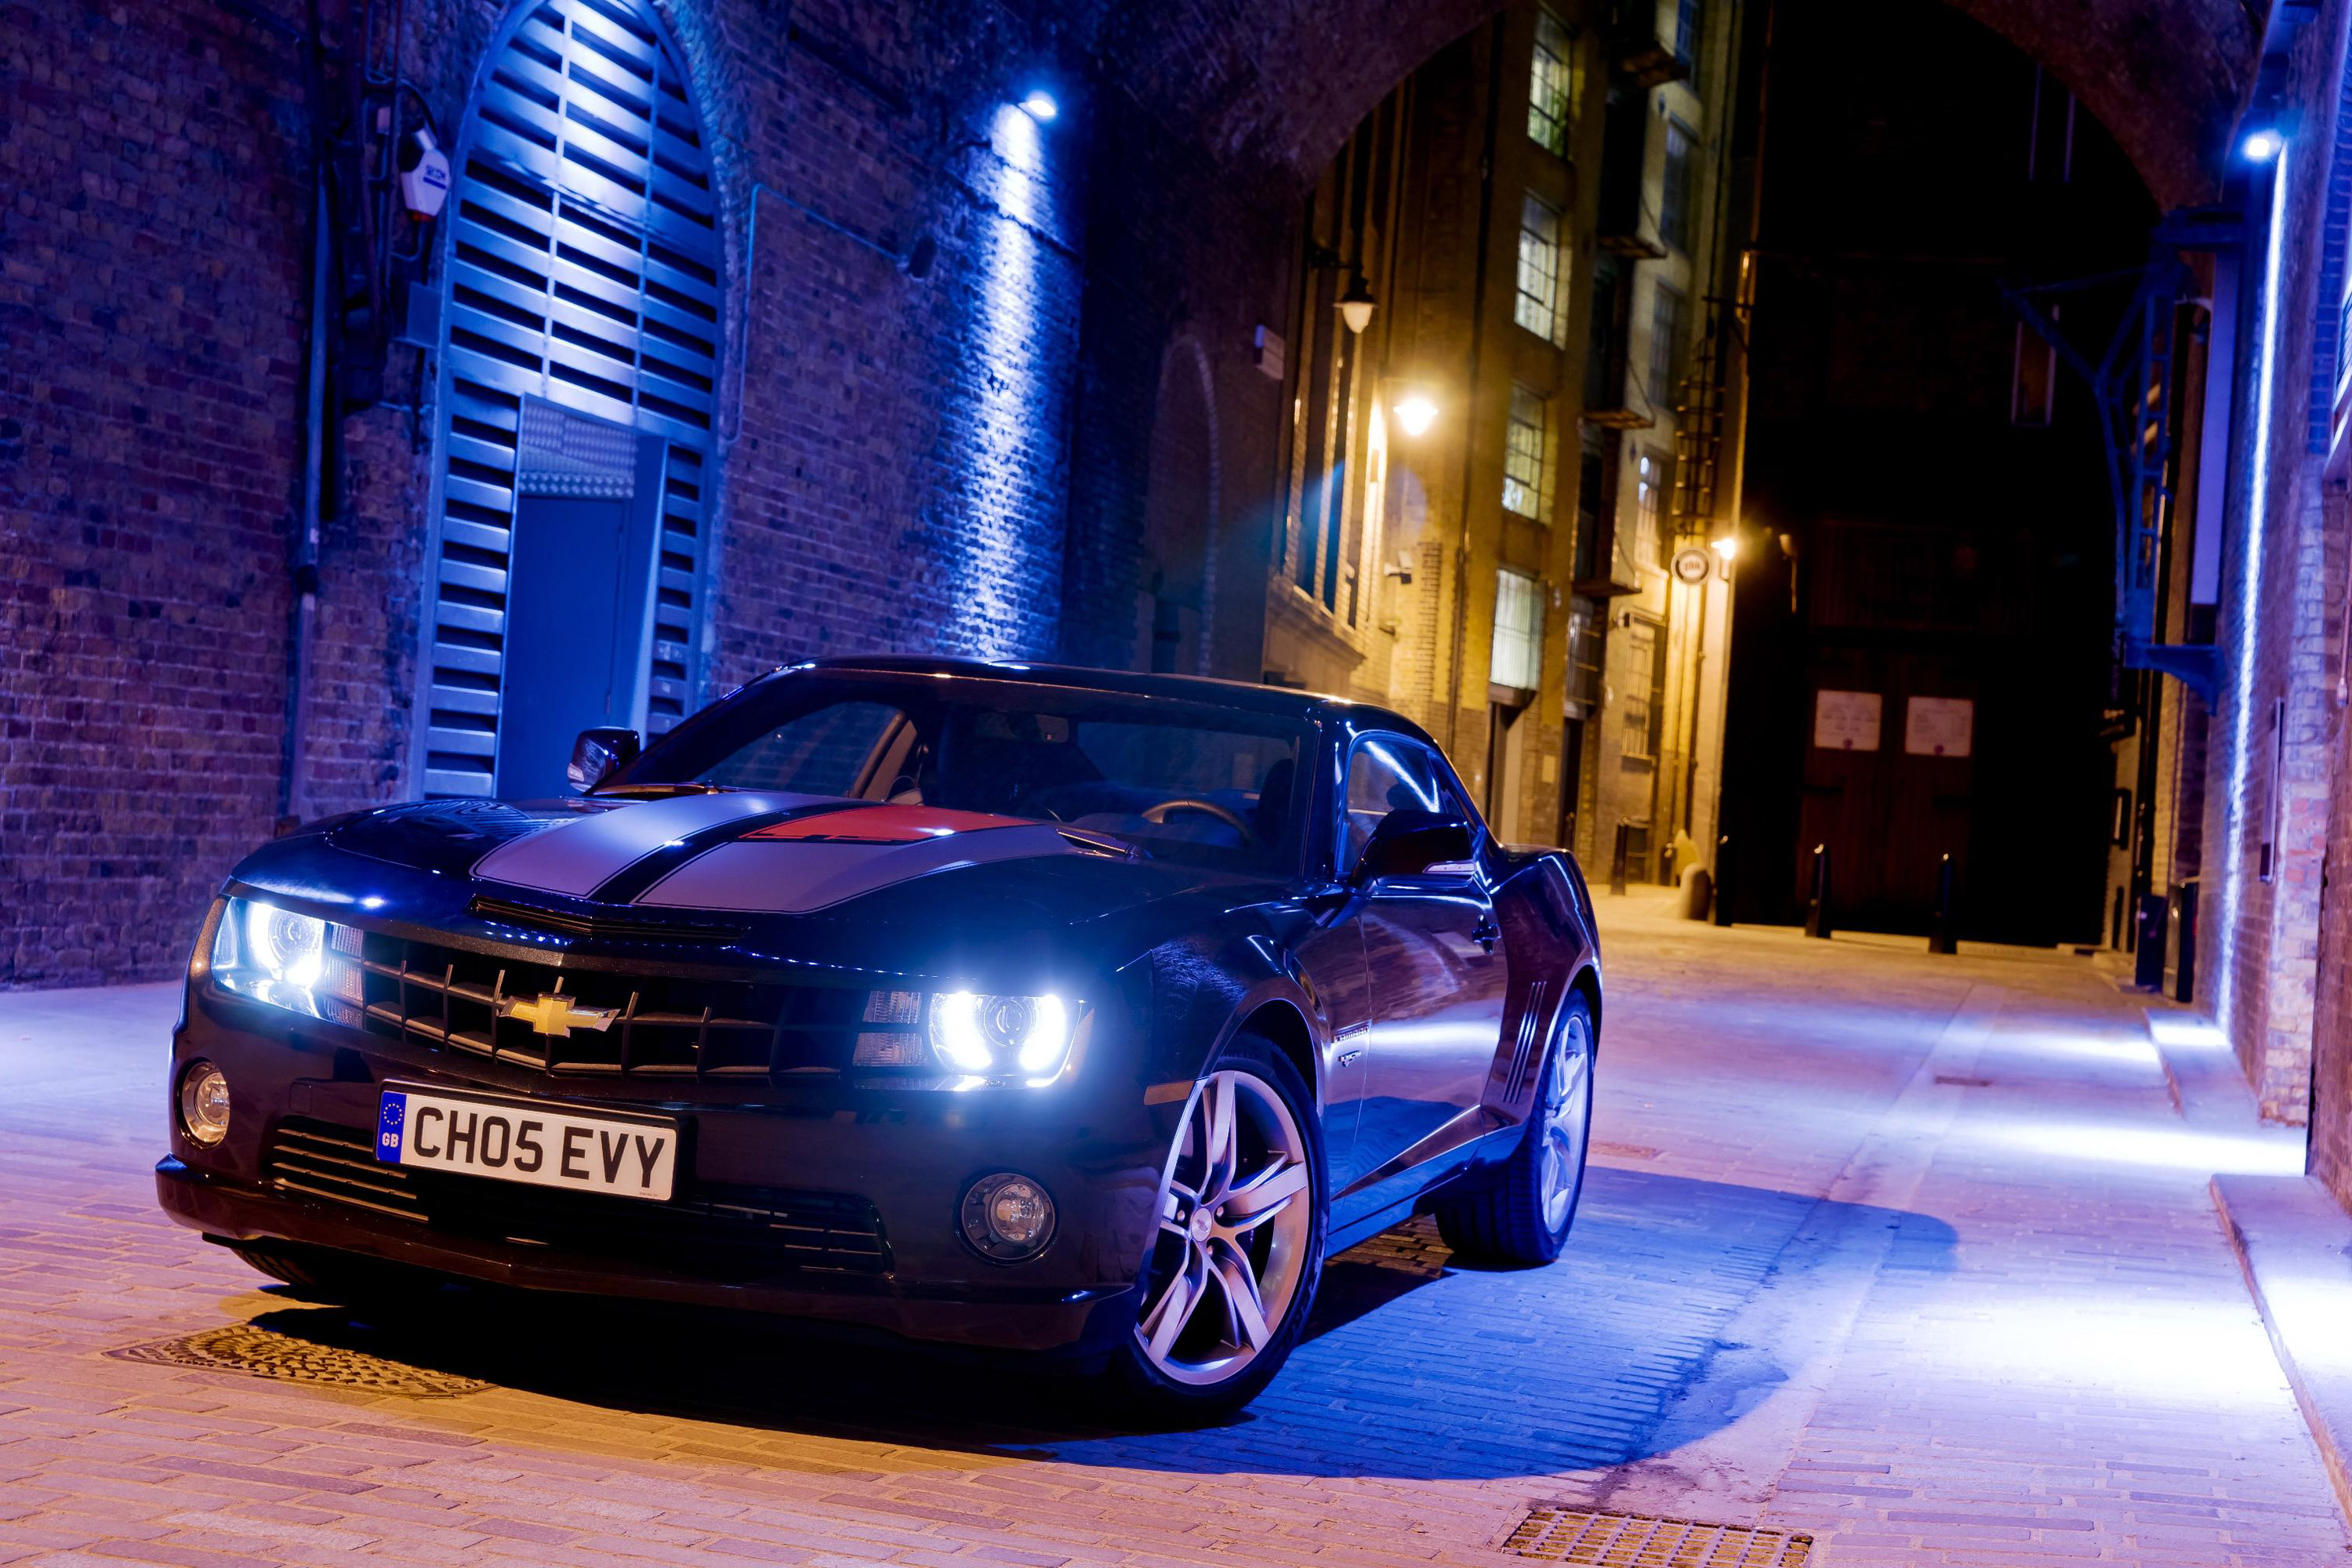 2013 Chevrolet Camaro In Europe Video